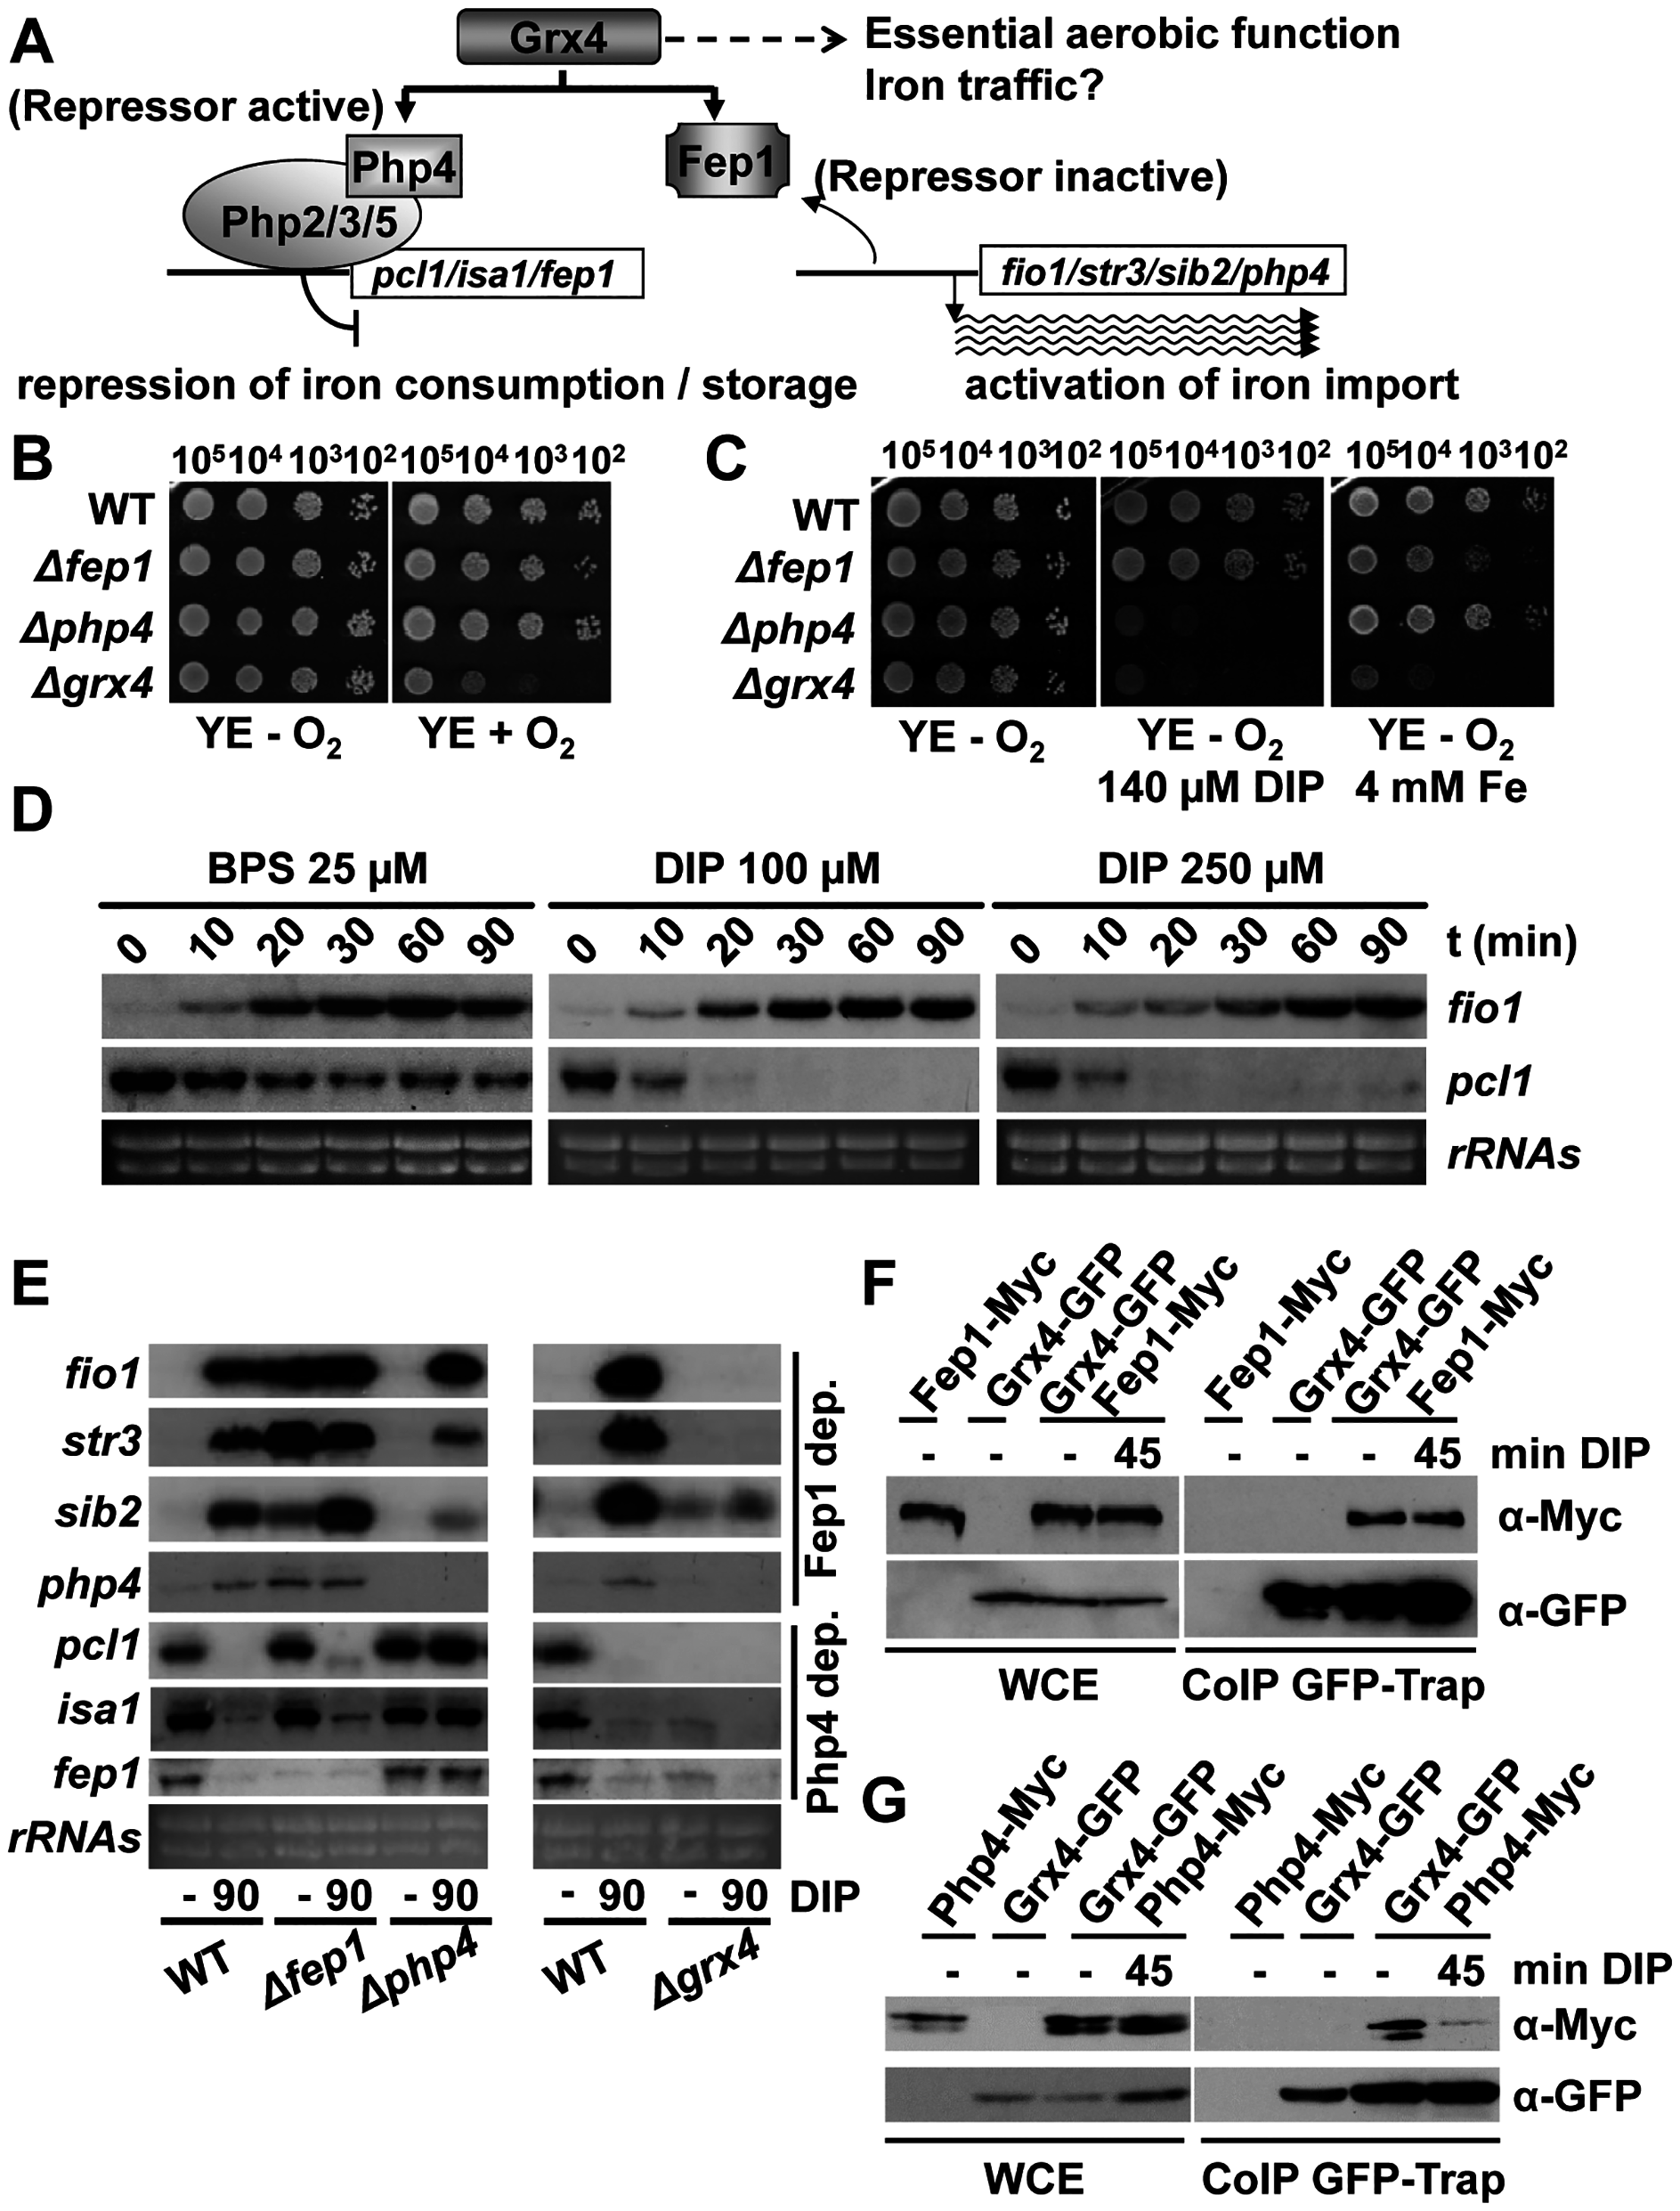 The glutaredoxin Grx4 functions in both Fe signaling and Fe traffic.